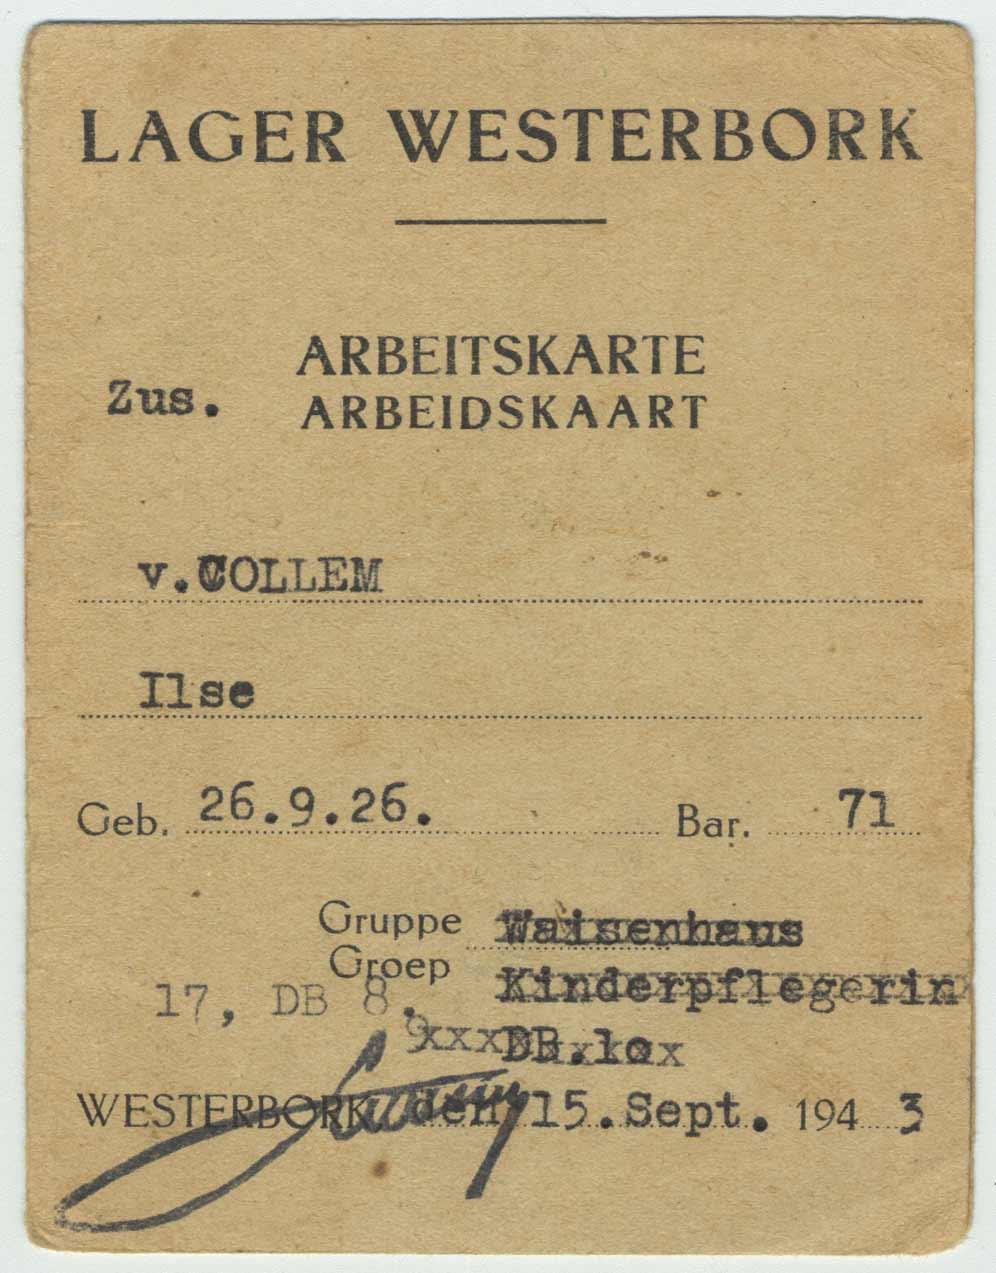 Work permit of Ilse van Collem at Westerbork, August 15, 1943.